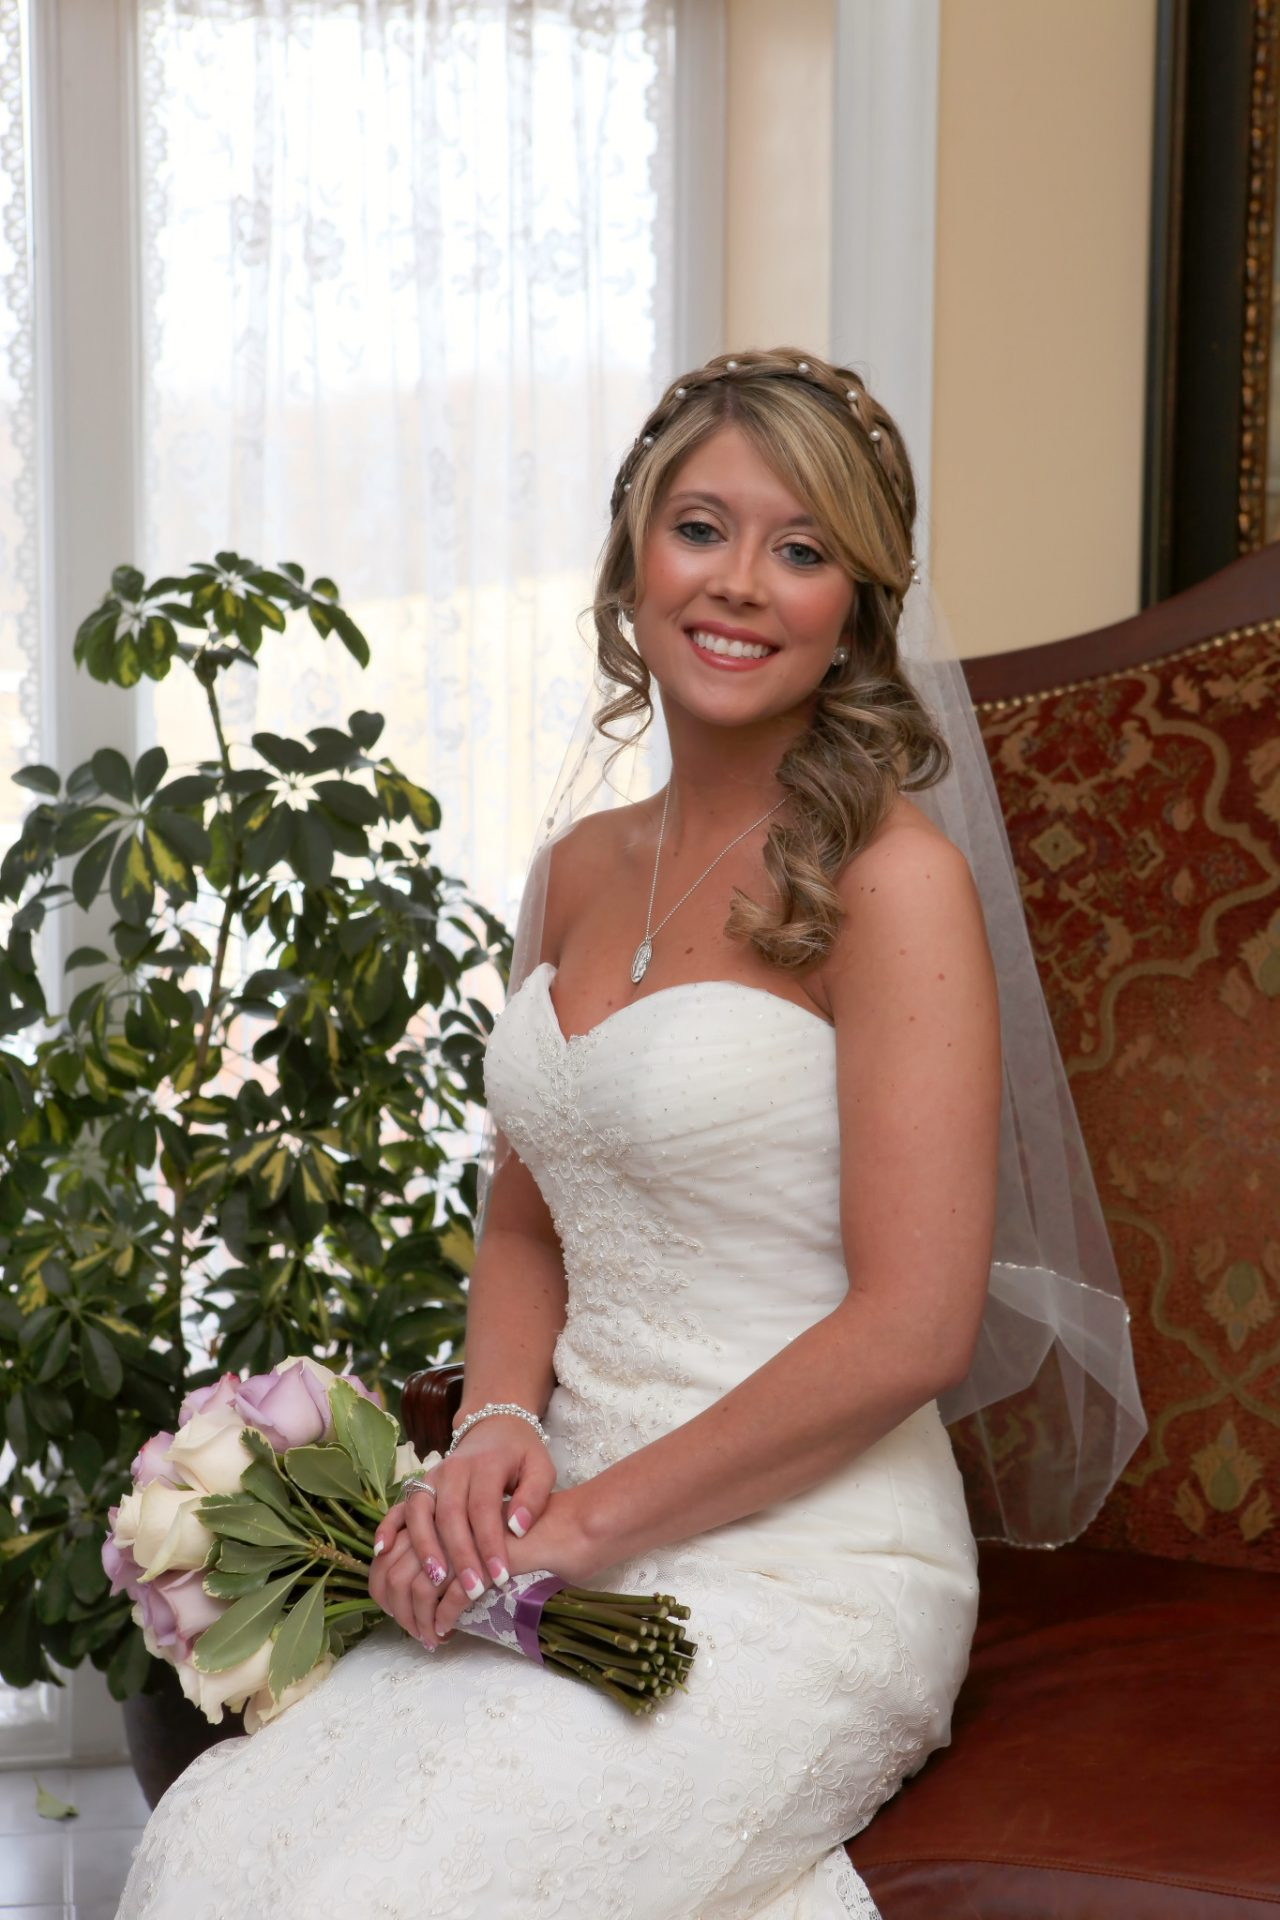 Bride sitting on leather couch by window in bride's room before wedding ceremony